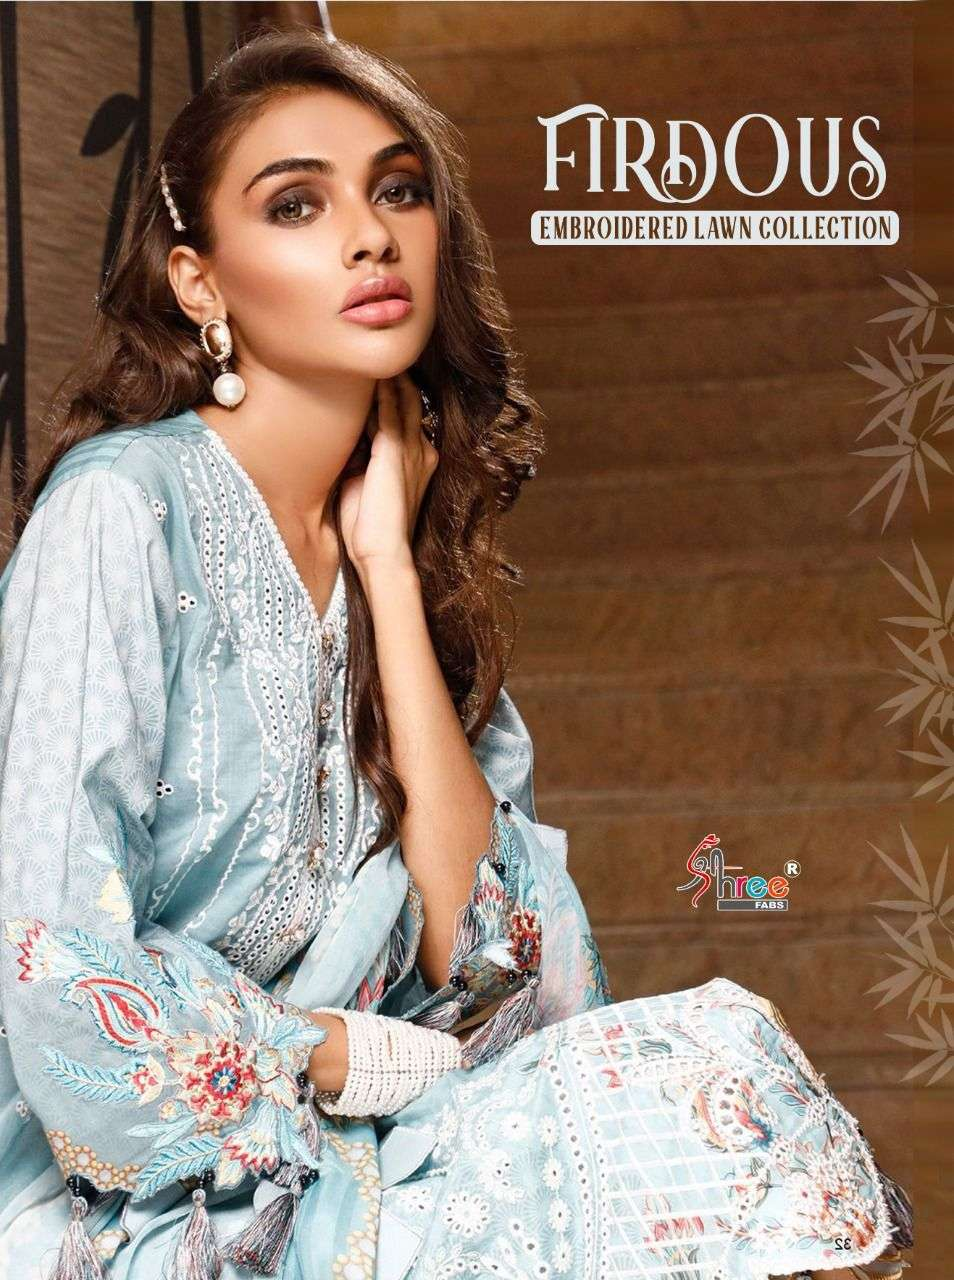 SHREE FAB FIRDOUS EMBROIDERED LAWN COLLECTION DESIGNER COTTON WITH HEAVY SELF AND SCHIFFLI WORK PAKISTANI PATTERN SUITS WHOLESALE